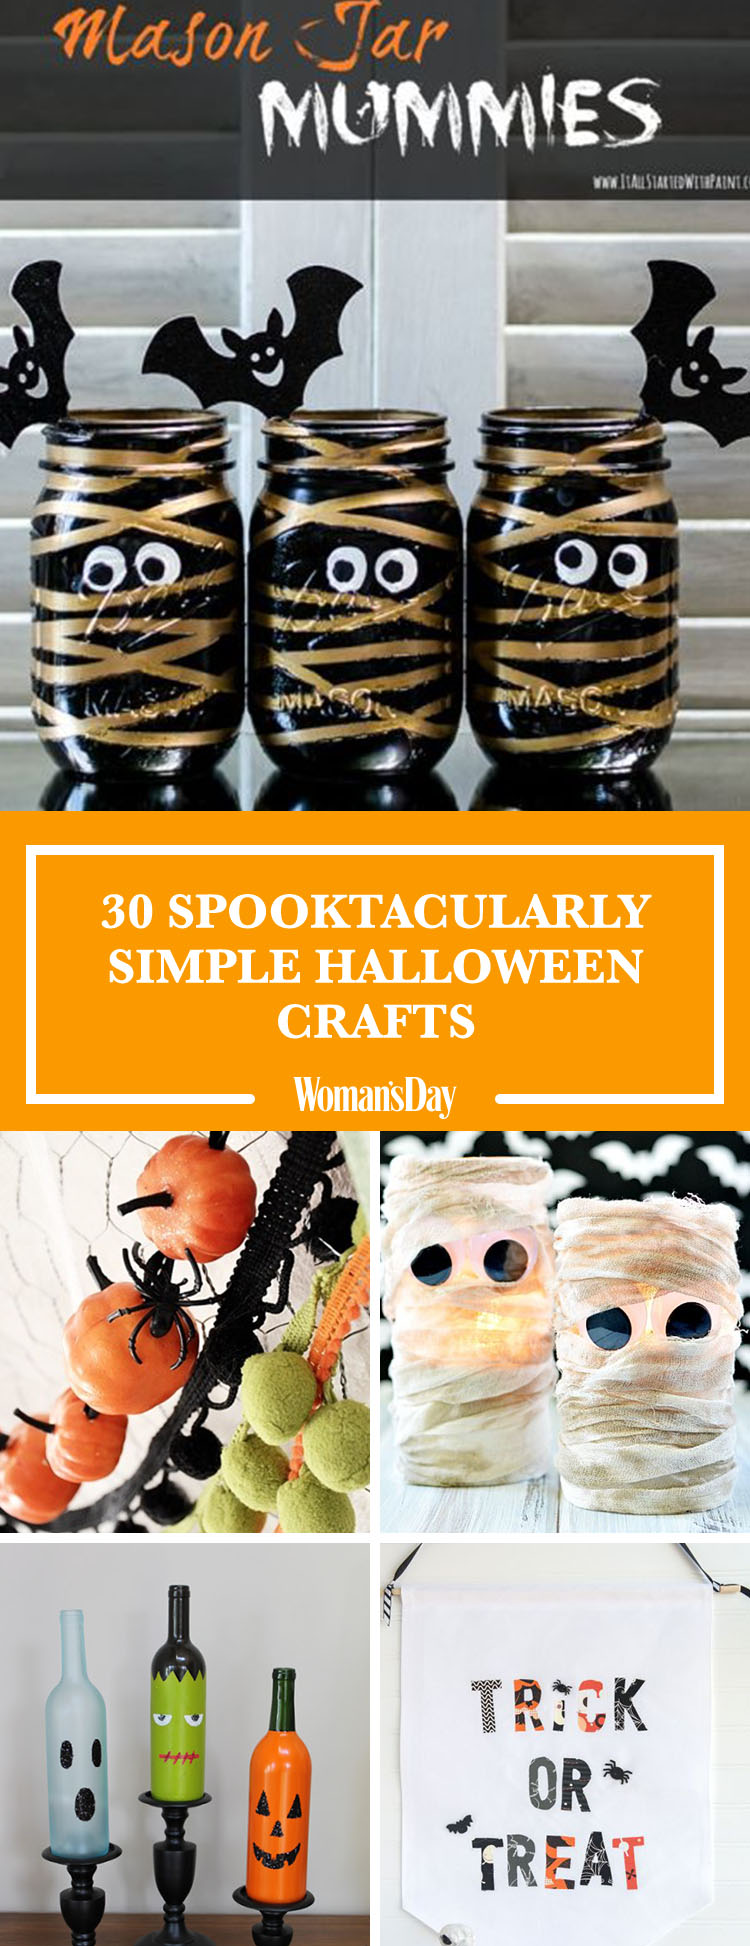 Easy Halloween Makeup: Fun DIY And Craft Ideas For